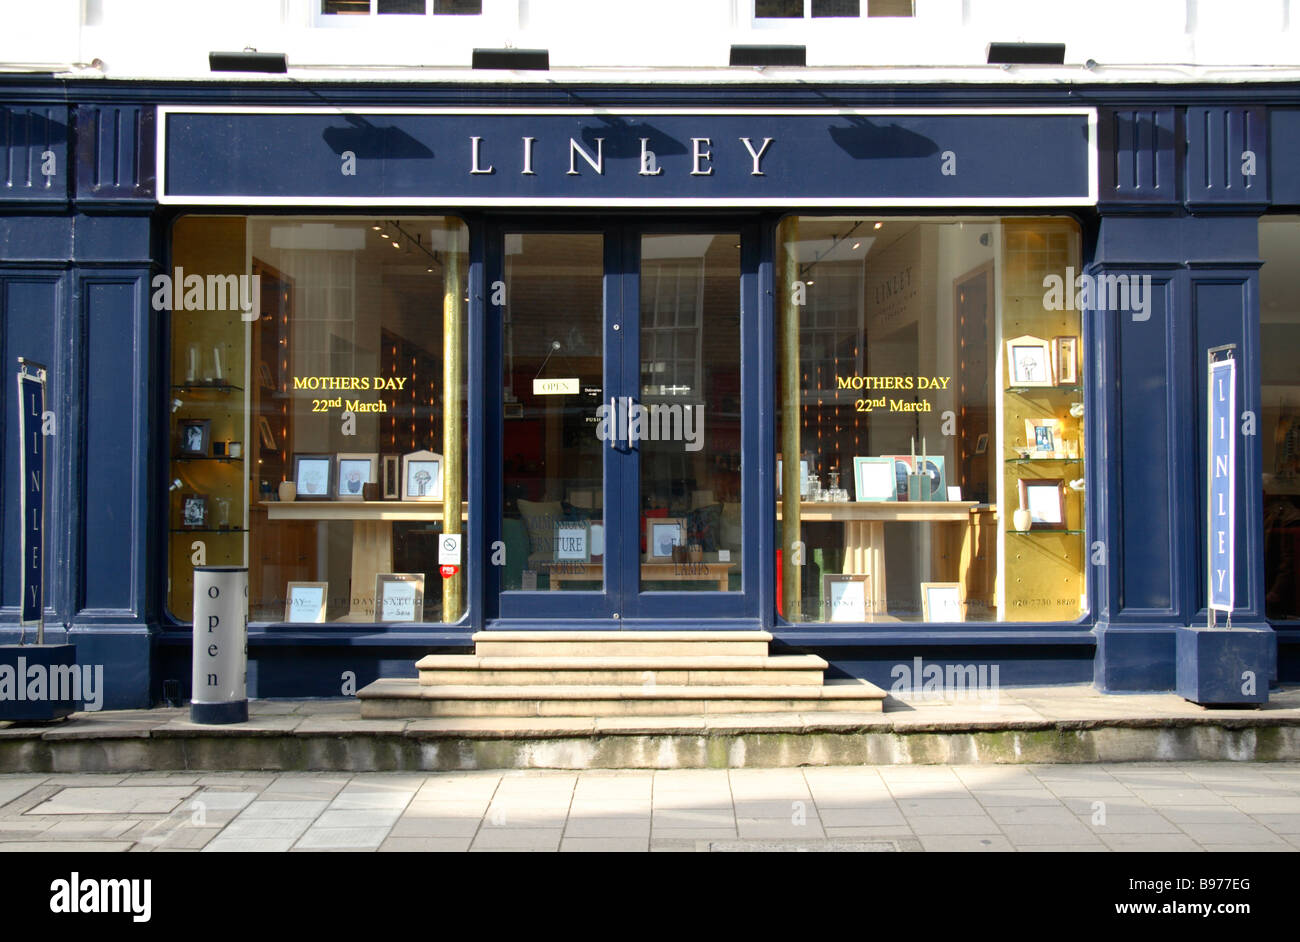 Front Elevation Of Furniture Showroom : The shop front of david linley furniture store